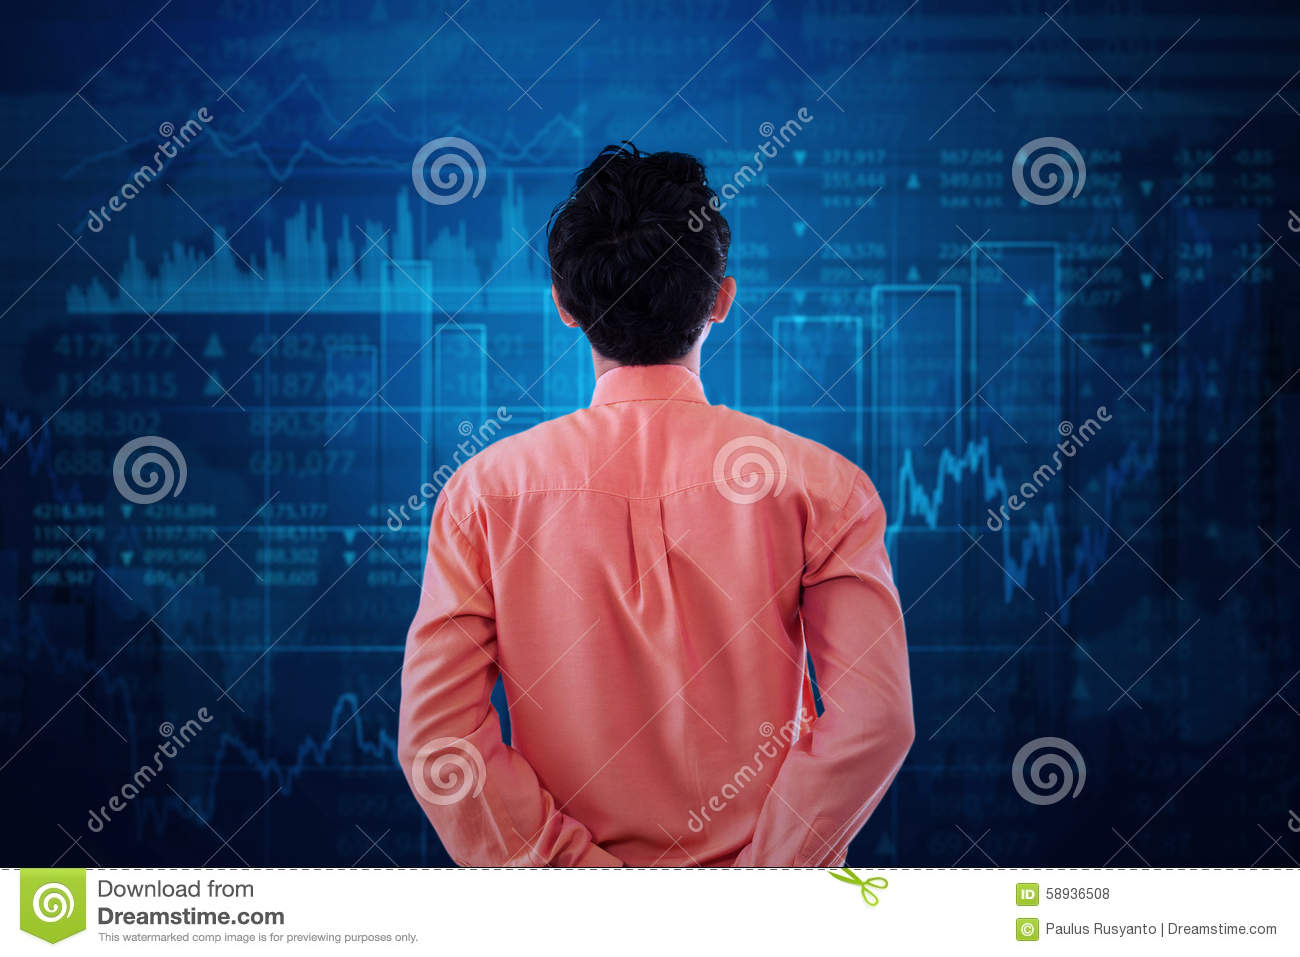 Worker watching at stock exchange graph